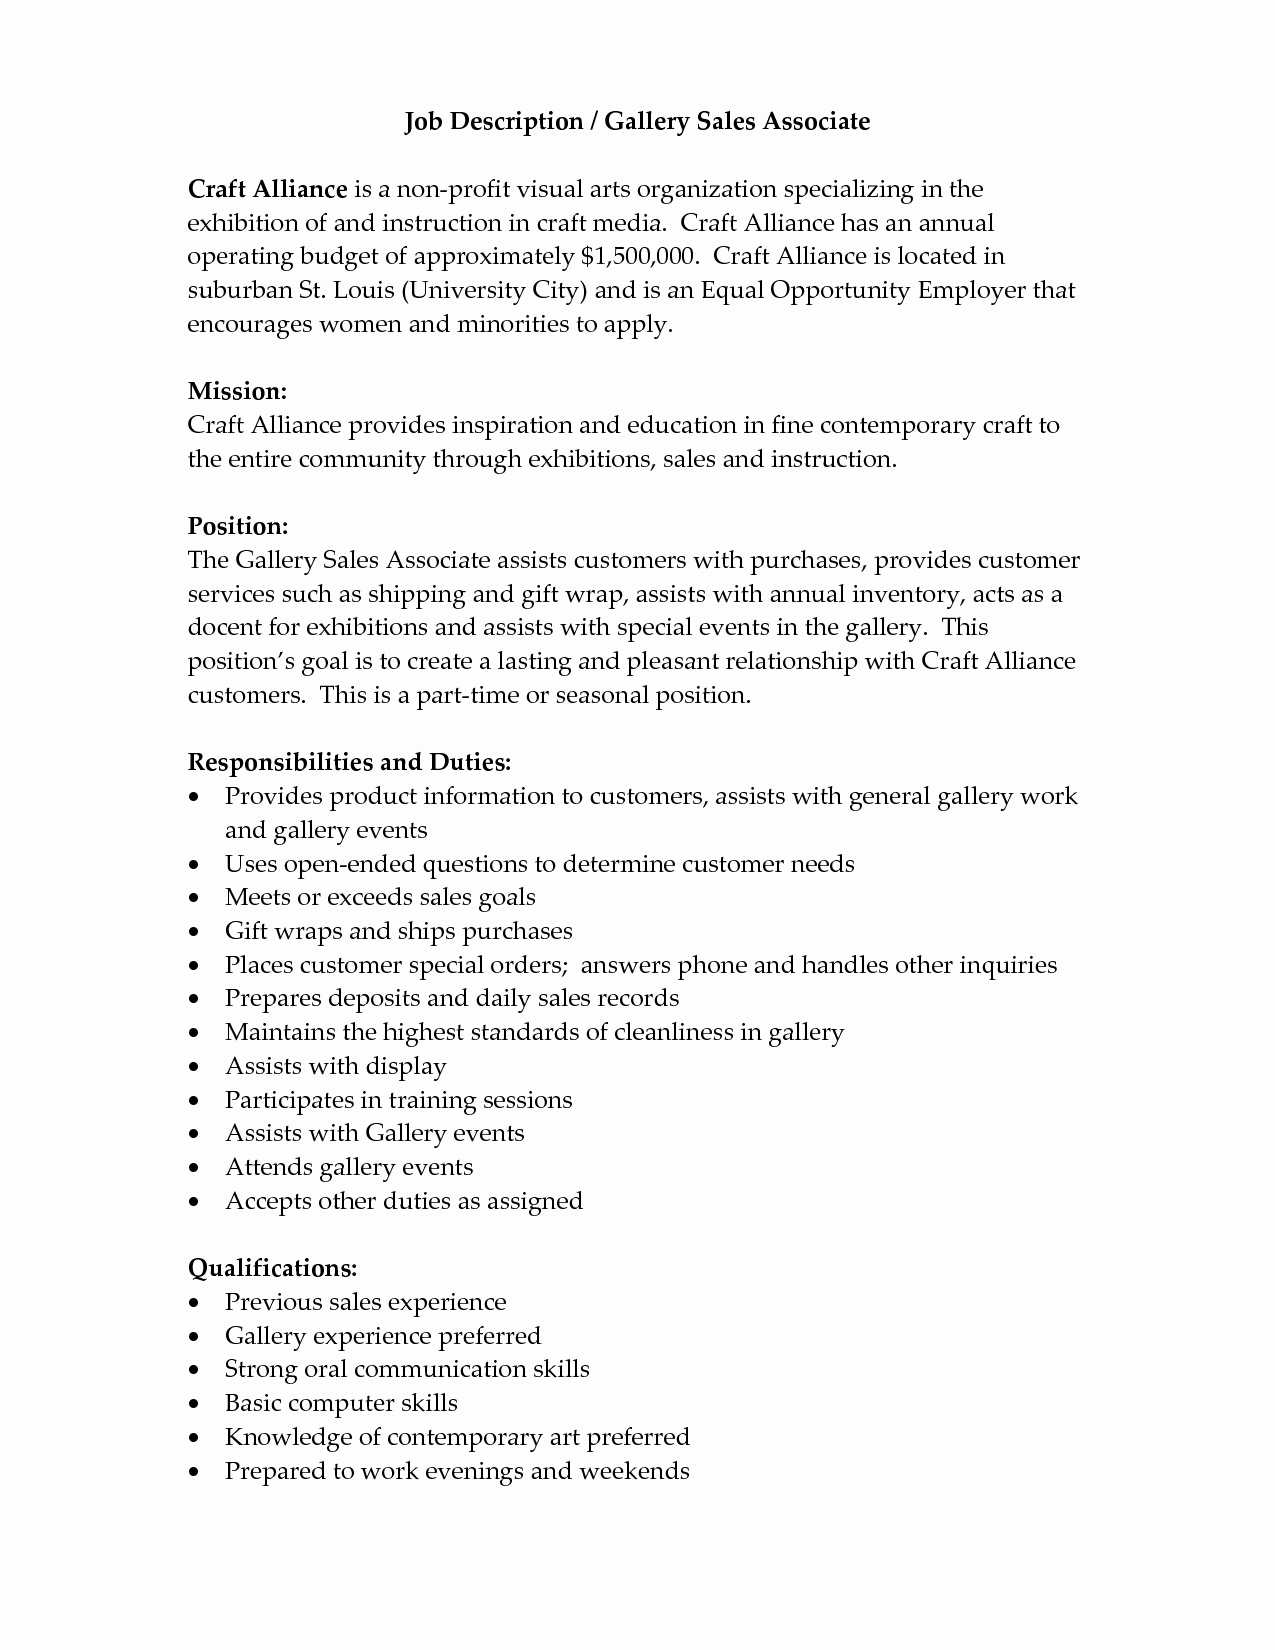 Job Description Of Retail Sales associate for Resume Sales